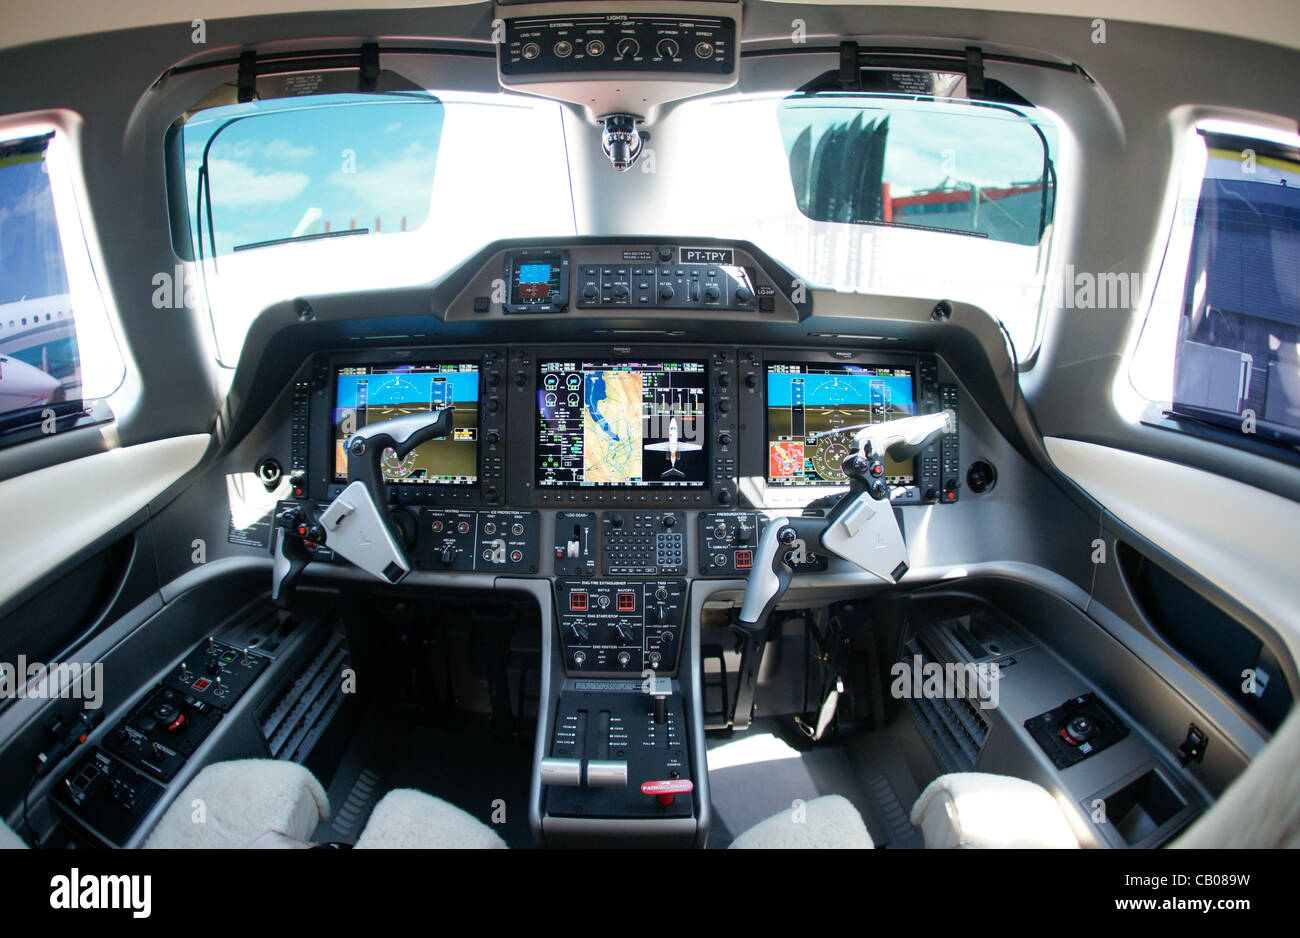 Tyres Direct Luton Business Jet Cockpit Stock Photos And Business Jet Cockpit